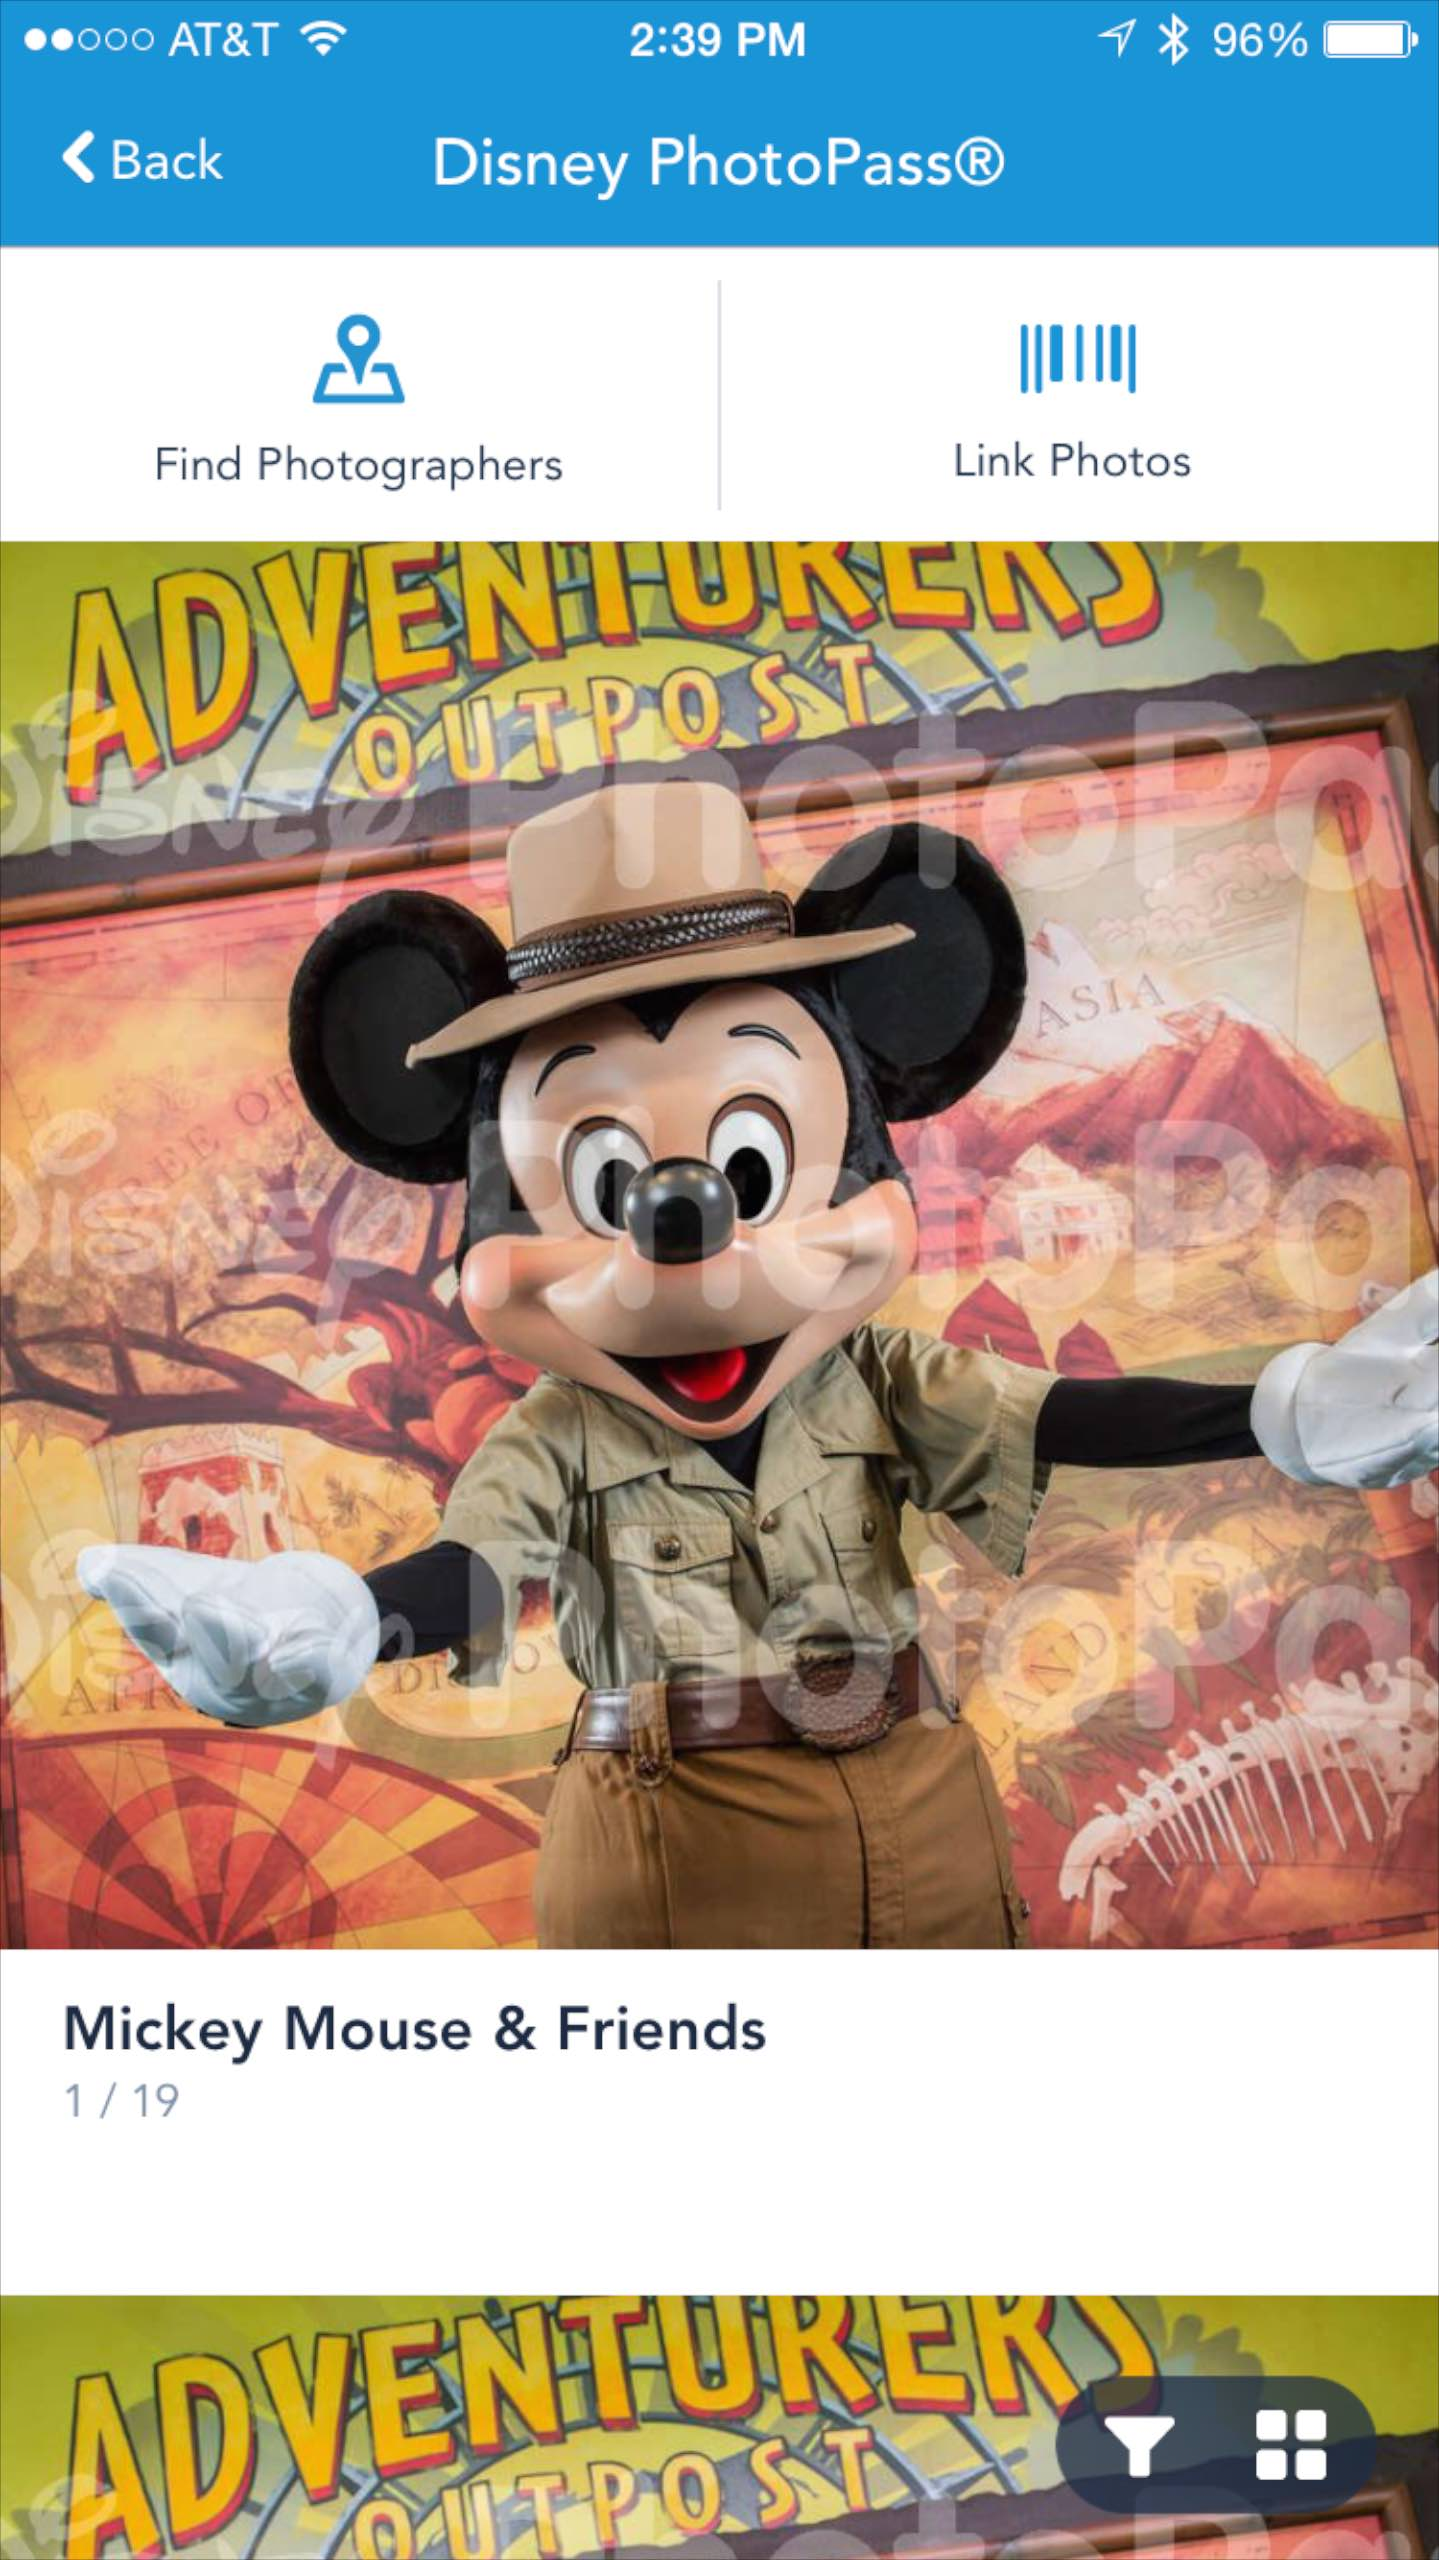 My Disney Experience PhotoPass screenshot - Preview